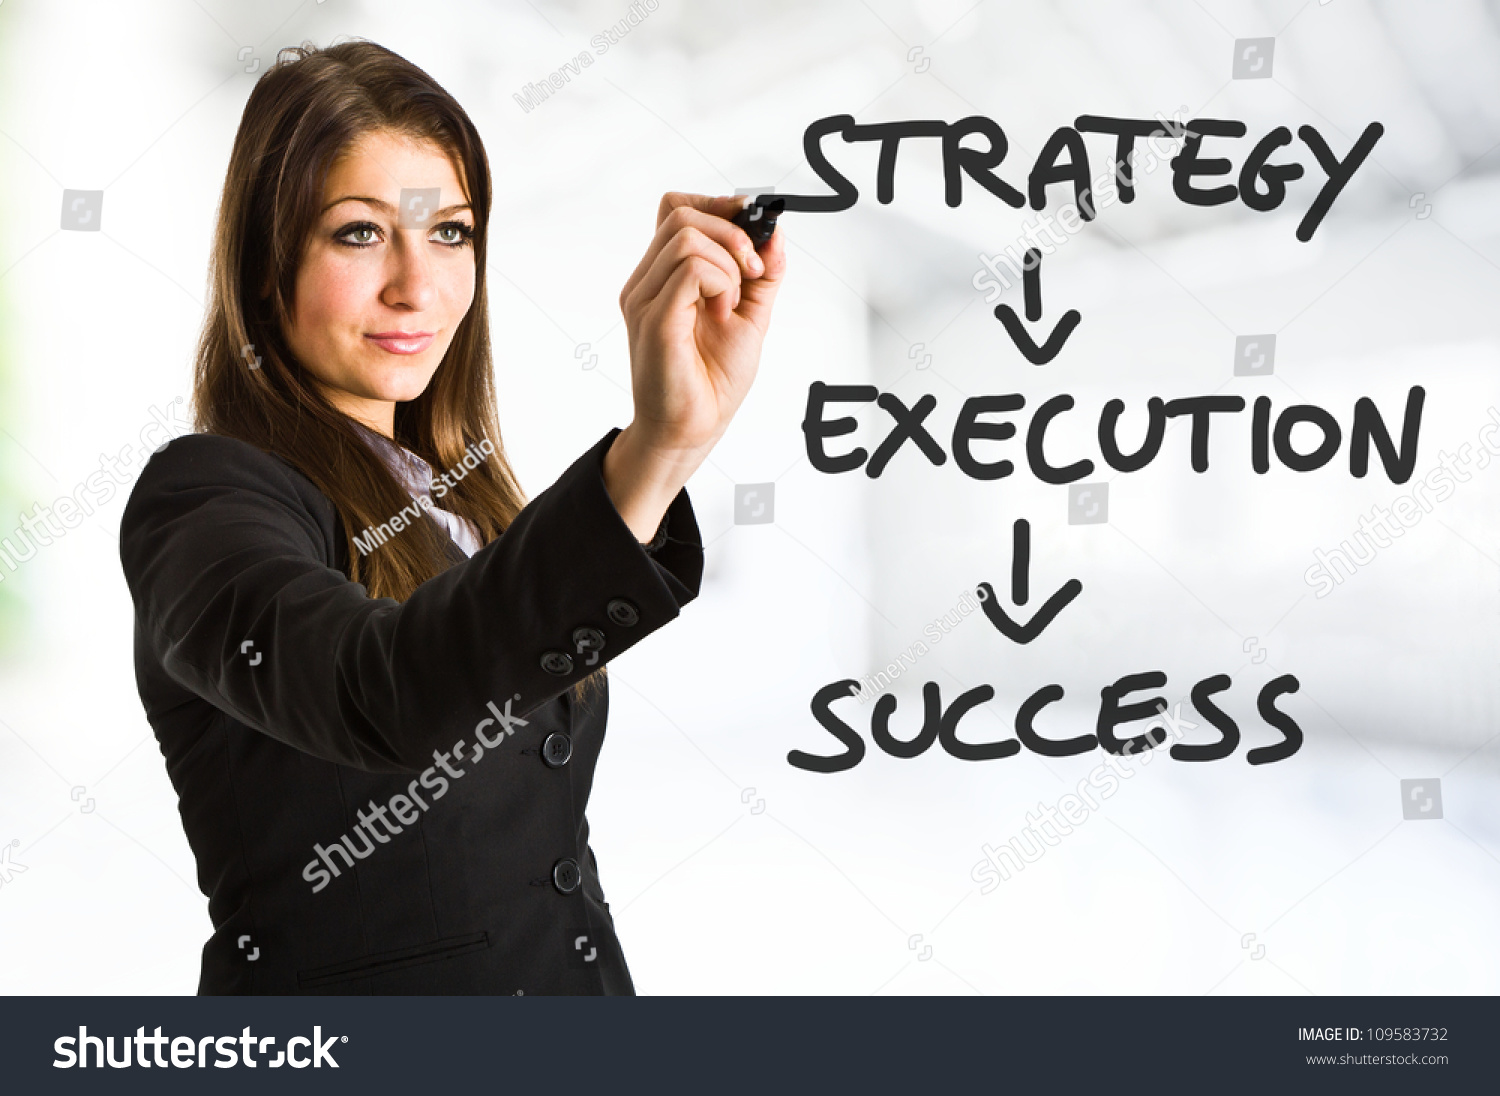 conceptualizing a business essay An explanation of the e-learning business vision will be discussed the mission, values, and how they are important in determining the strategic direction will be discussed the product and.